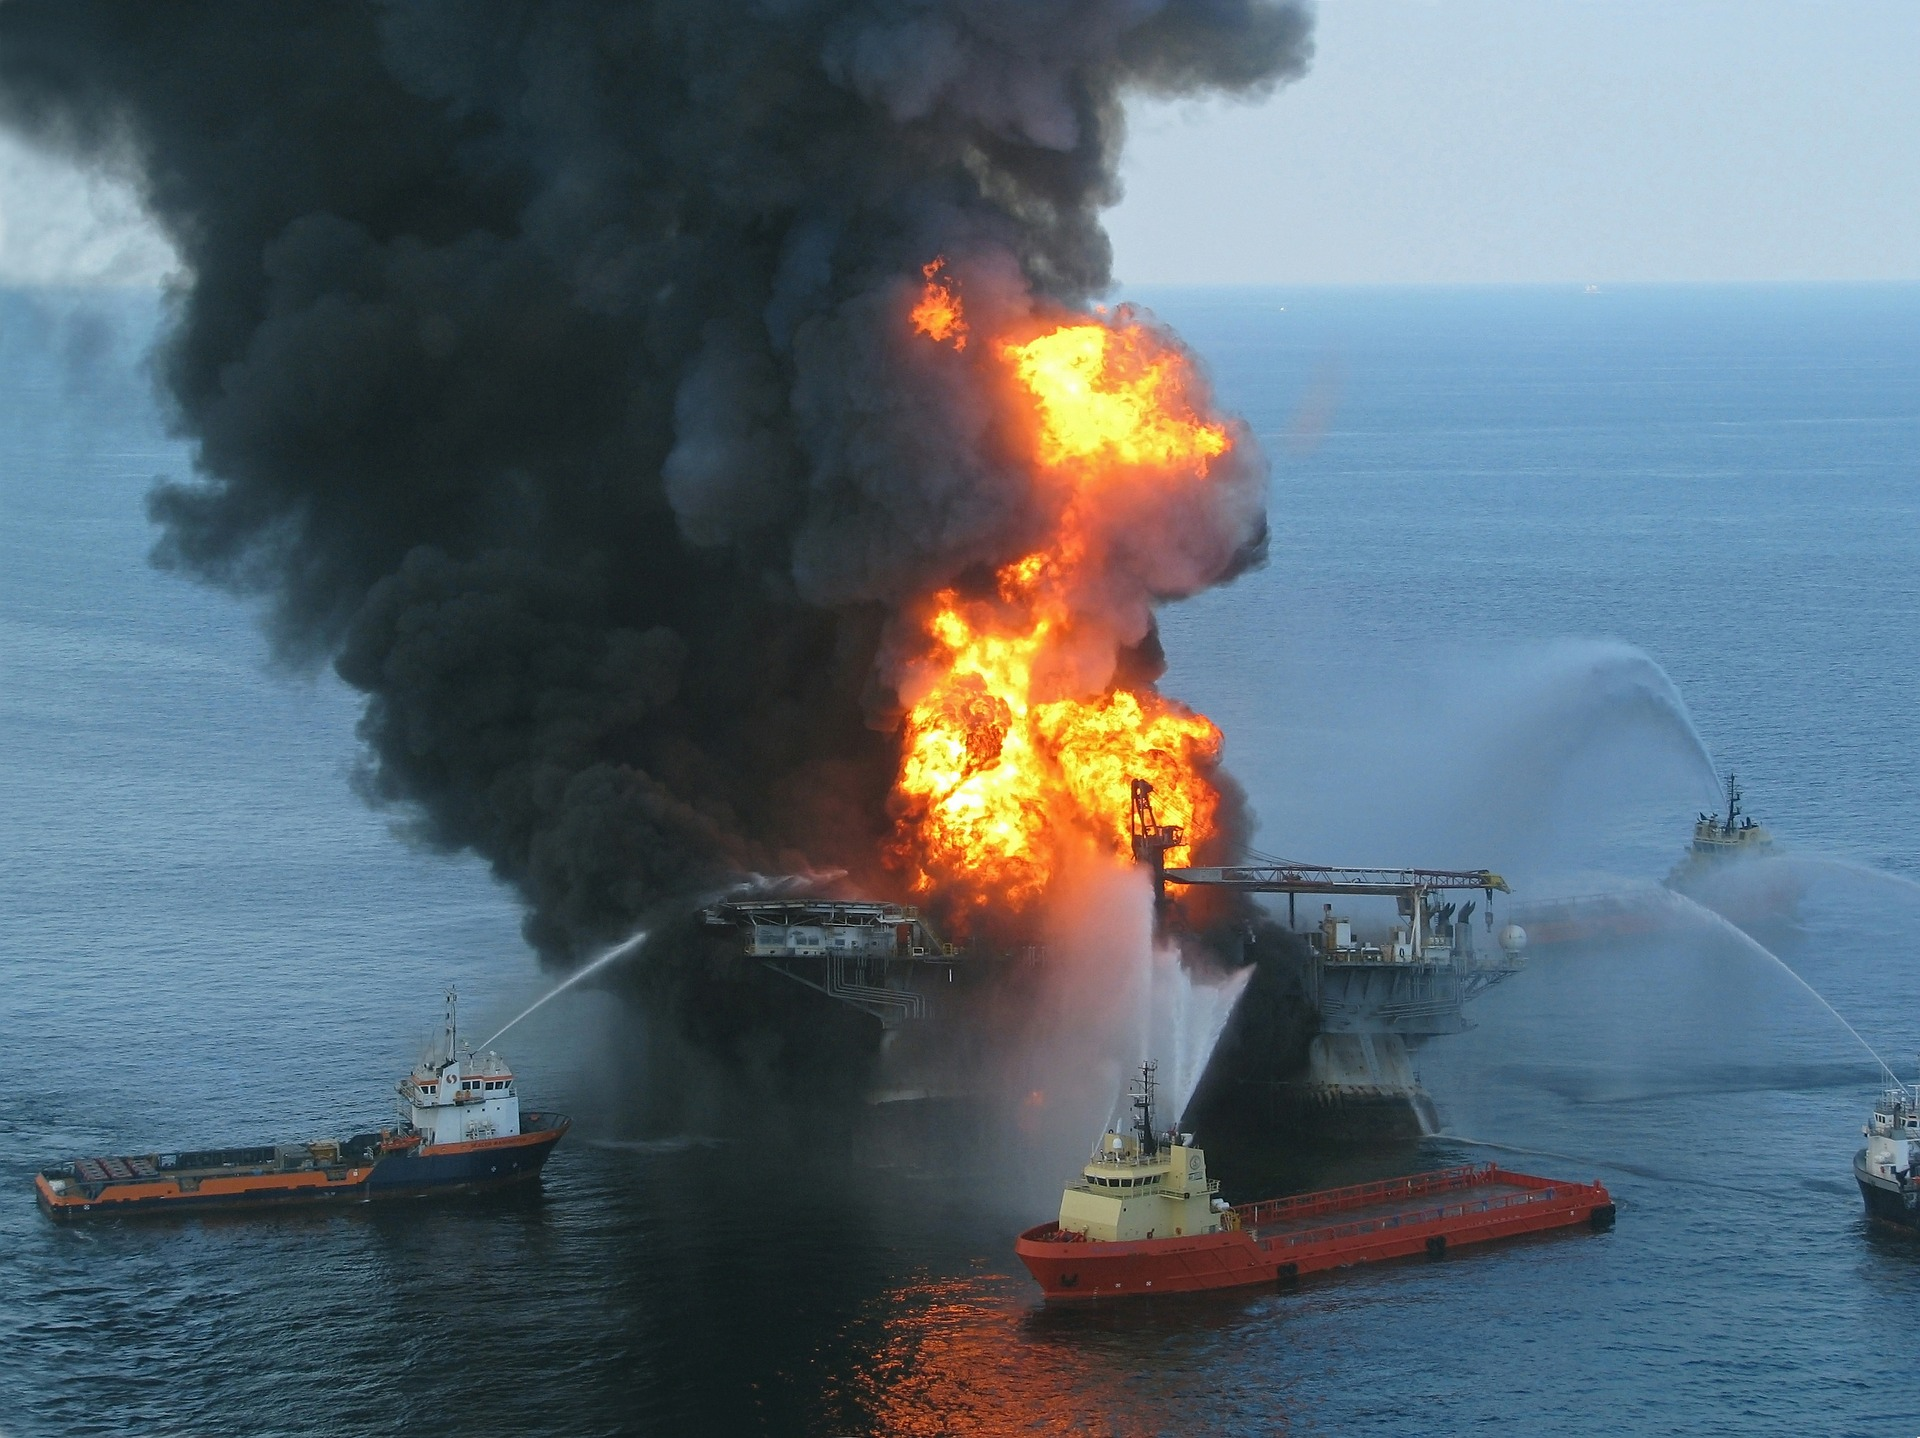 An oil rig explodes in the Gulf of Mexico.